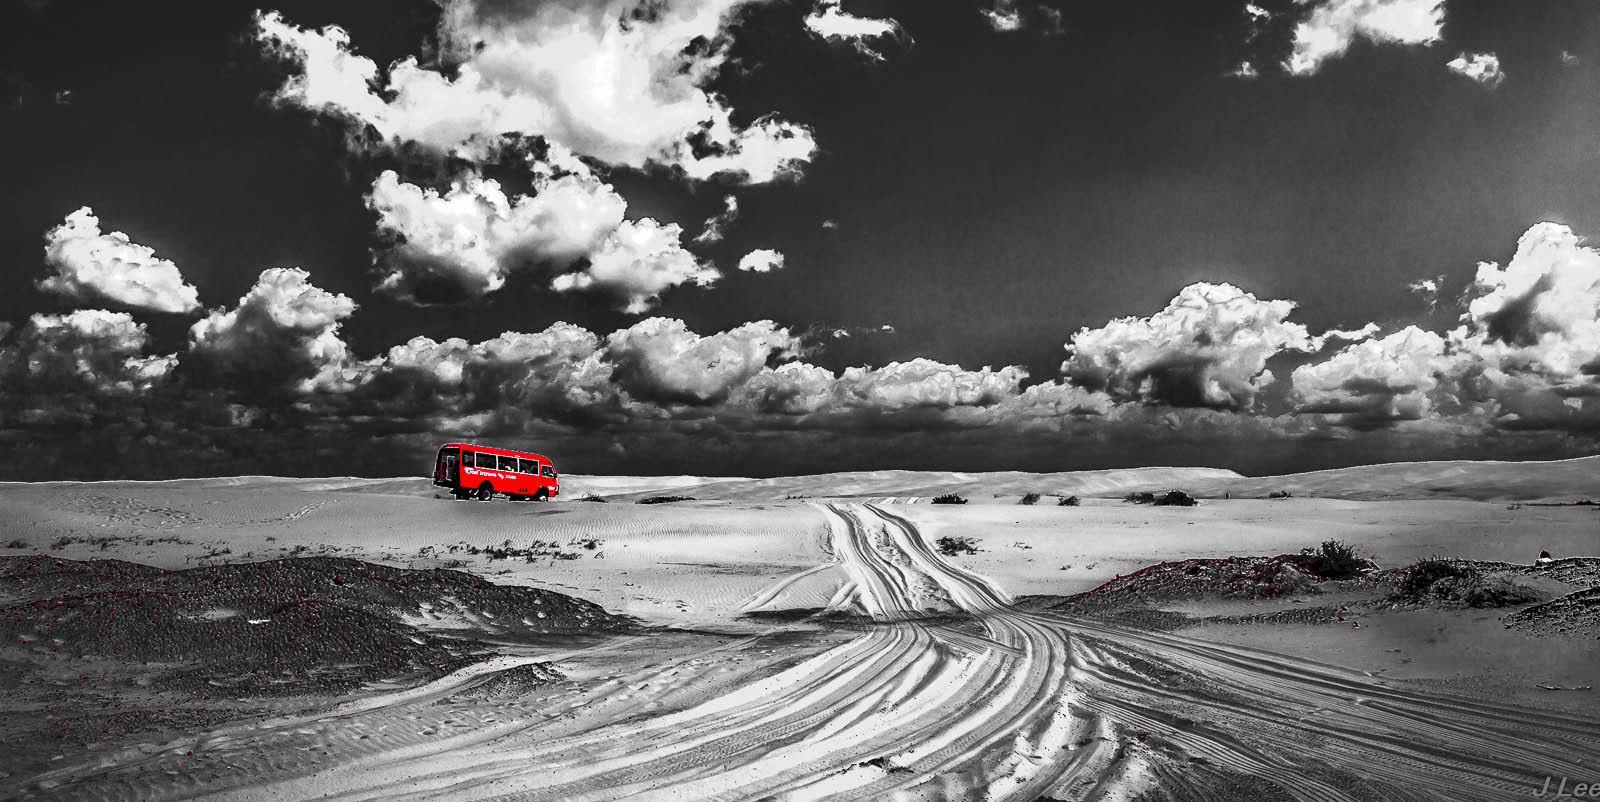 Photograph Stormy Desert by James Lee on 500px